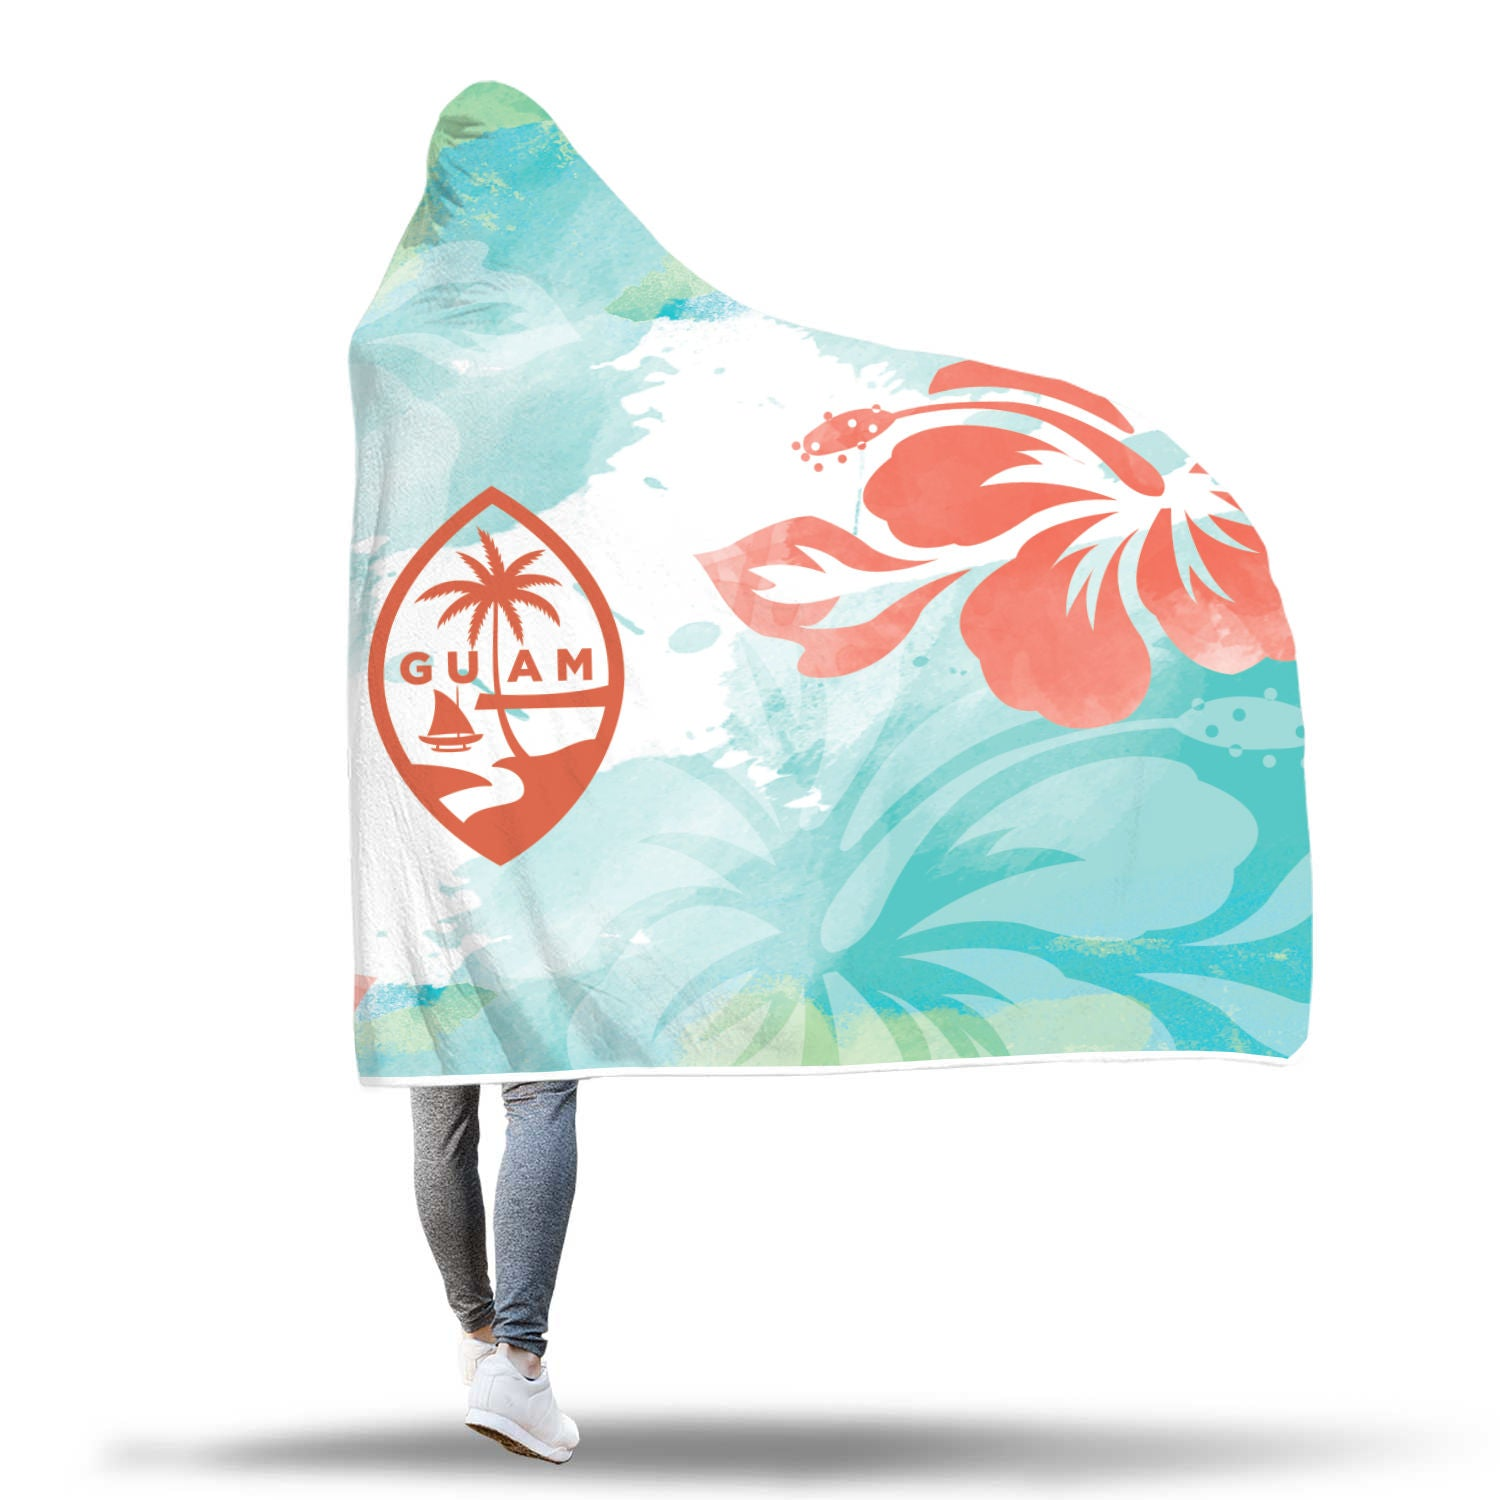 Guam Seal Hibiscus Tropical Chamorro Sherpa Hooded Blanket